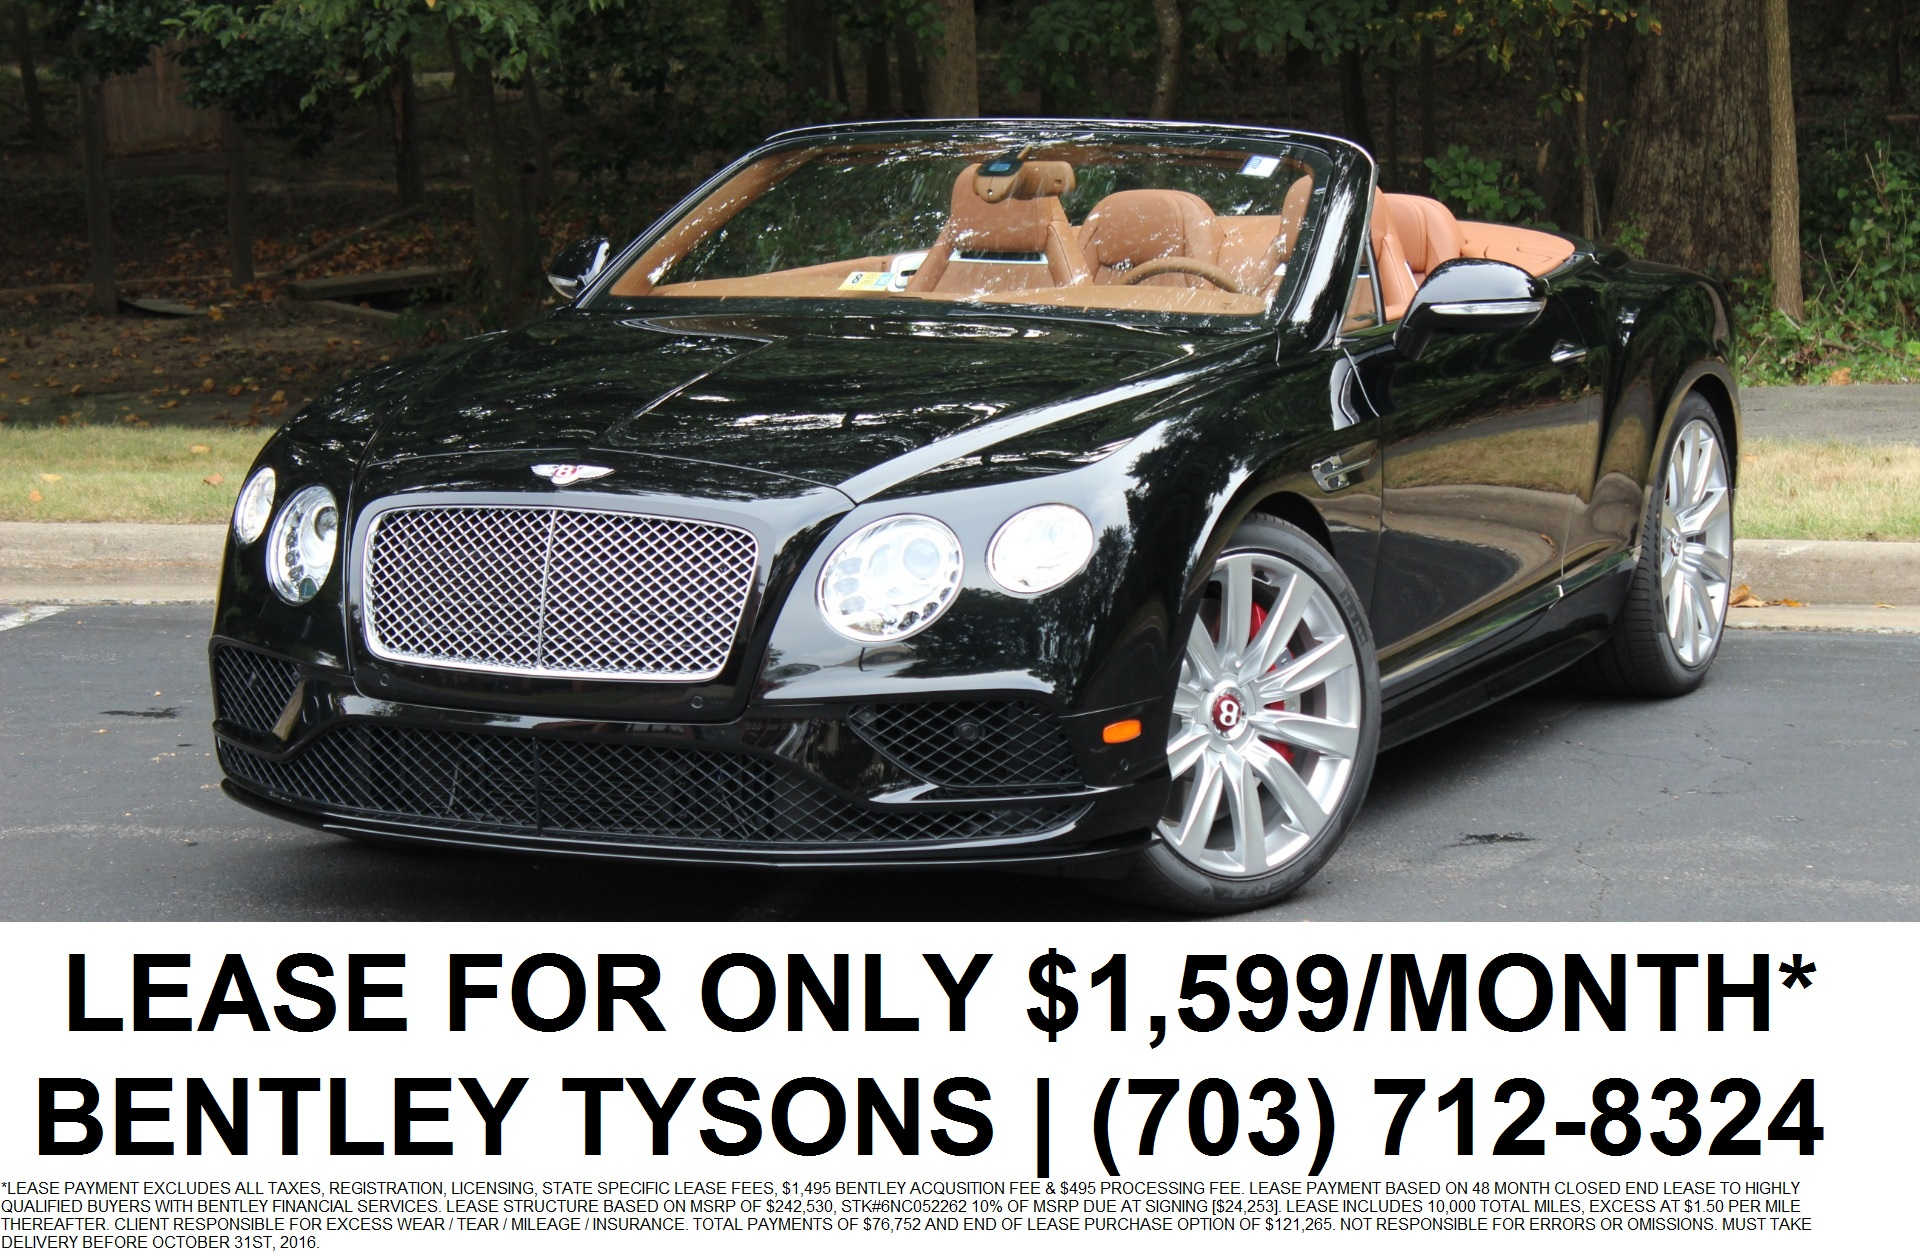 new motors inc glendale of leasing auto continental beautiful and here sales lease click bentley a beverly car